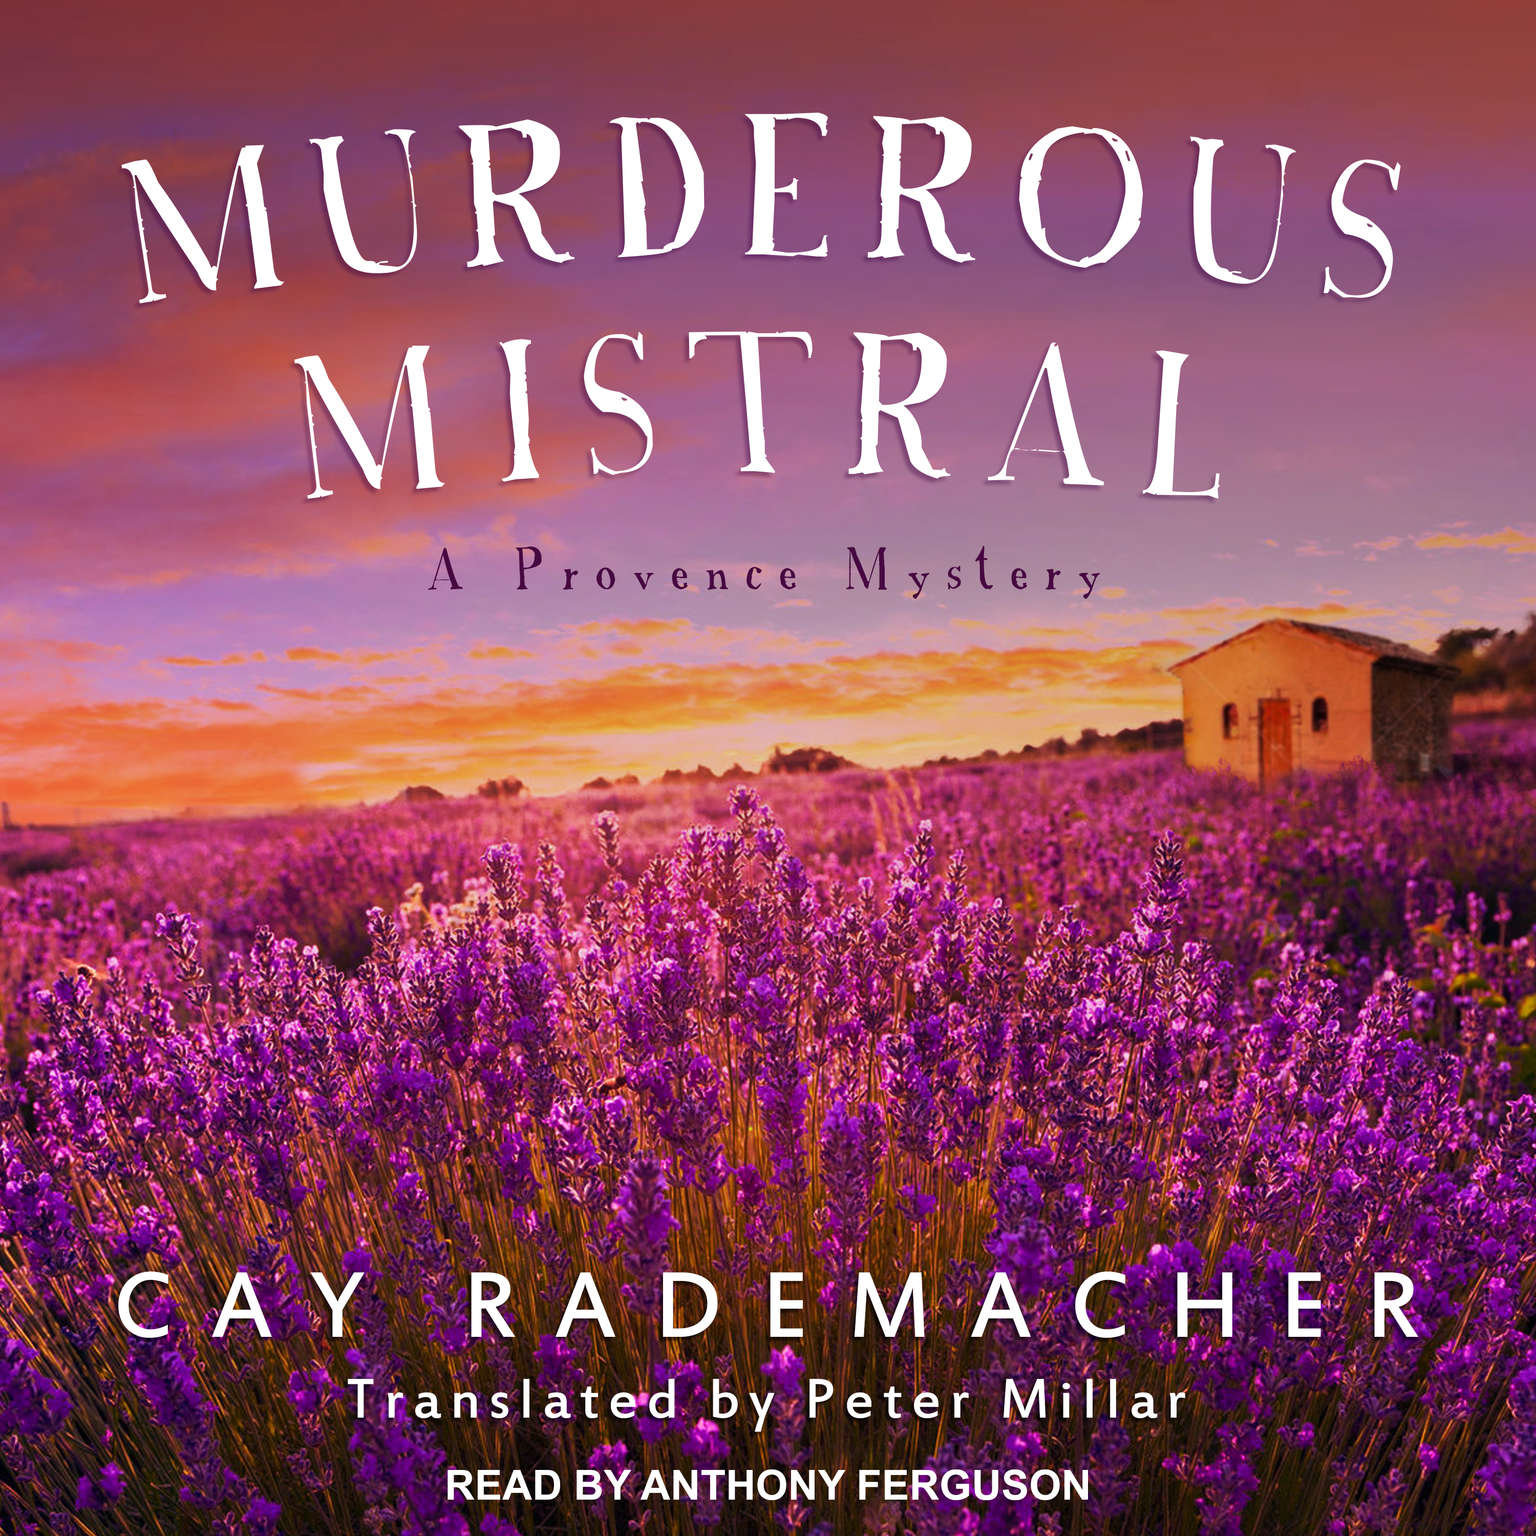 Murderous Mistral: A Provence Mystery Audiobook, by Cay Rademacher